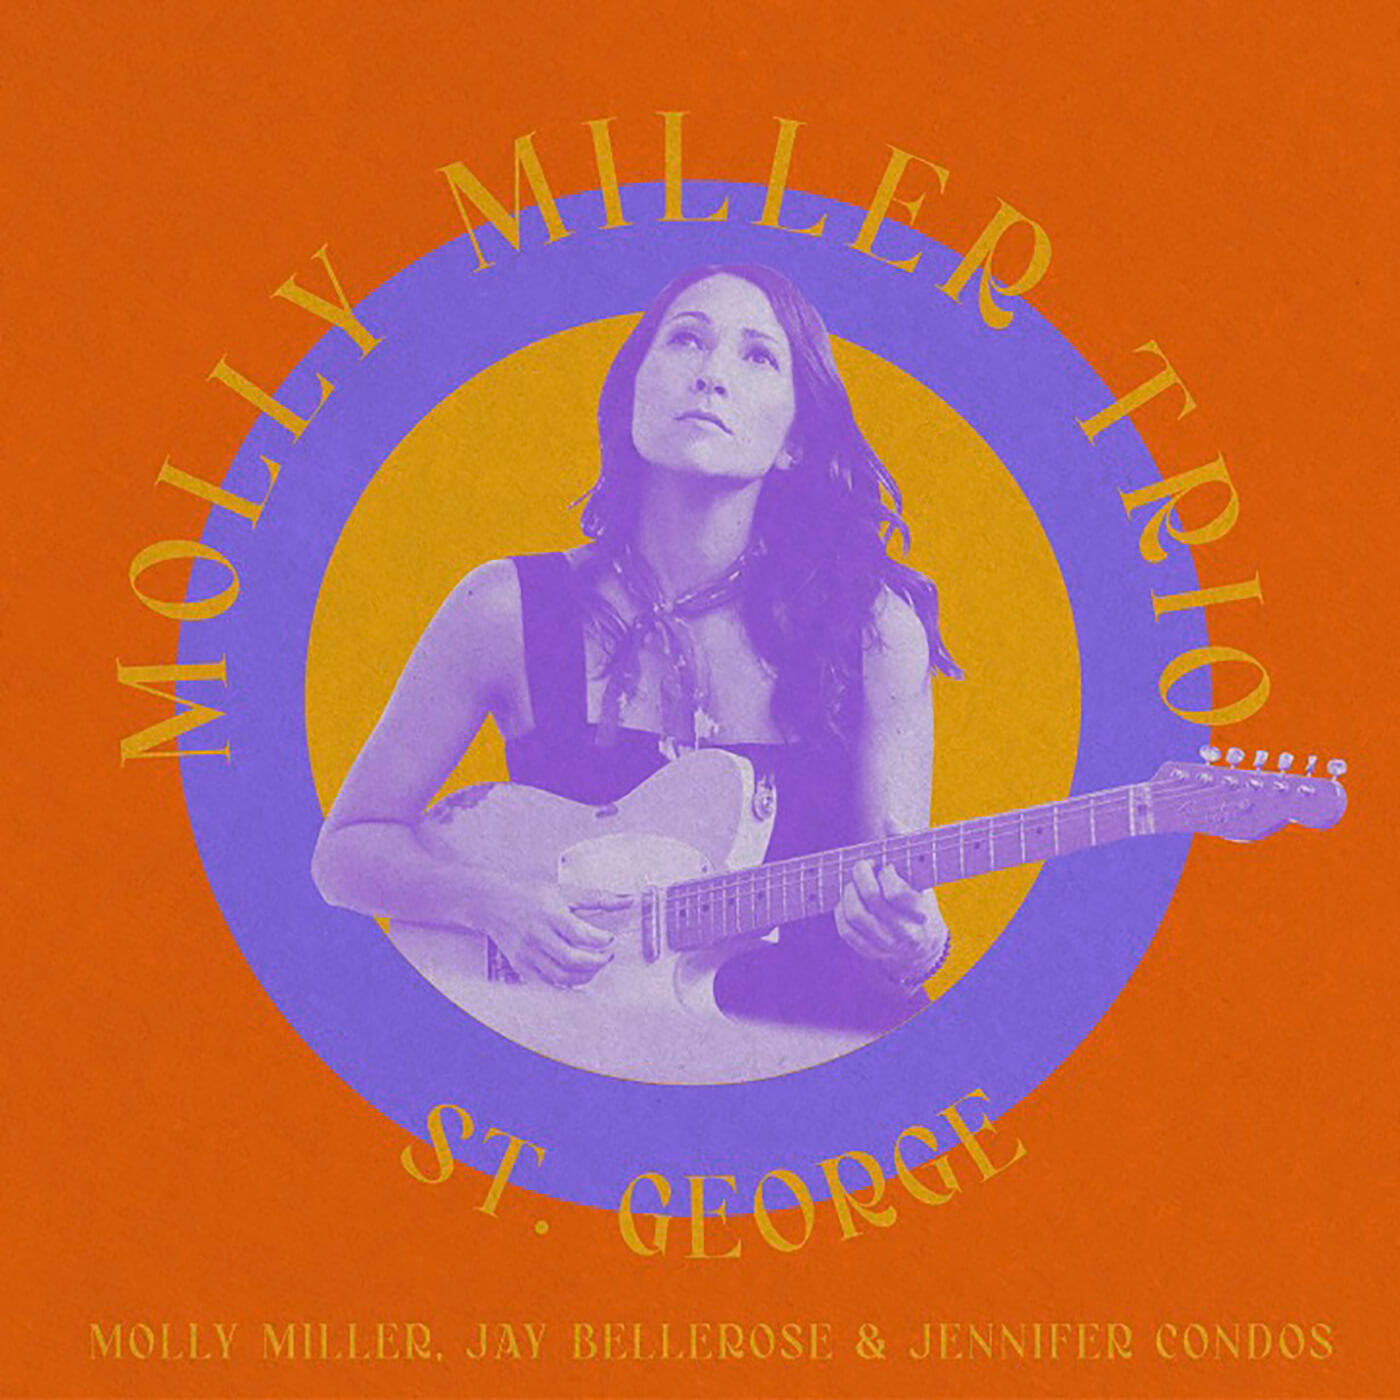 Molly Miller Trio - St. George